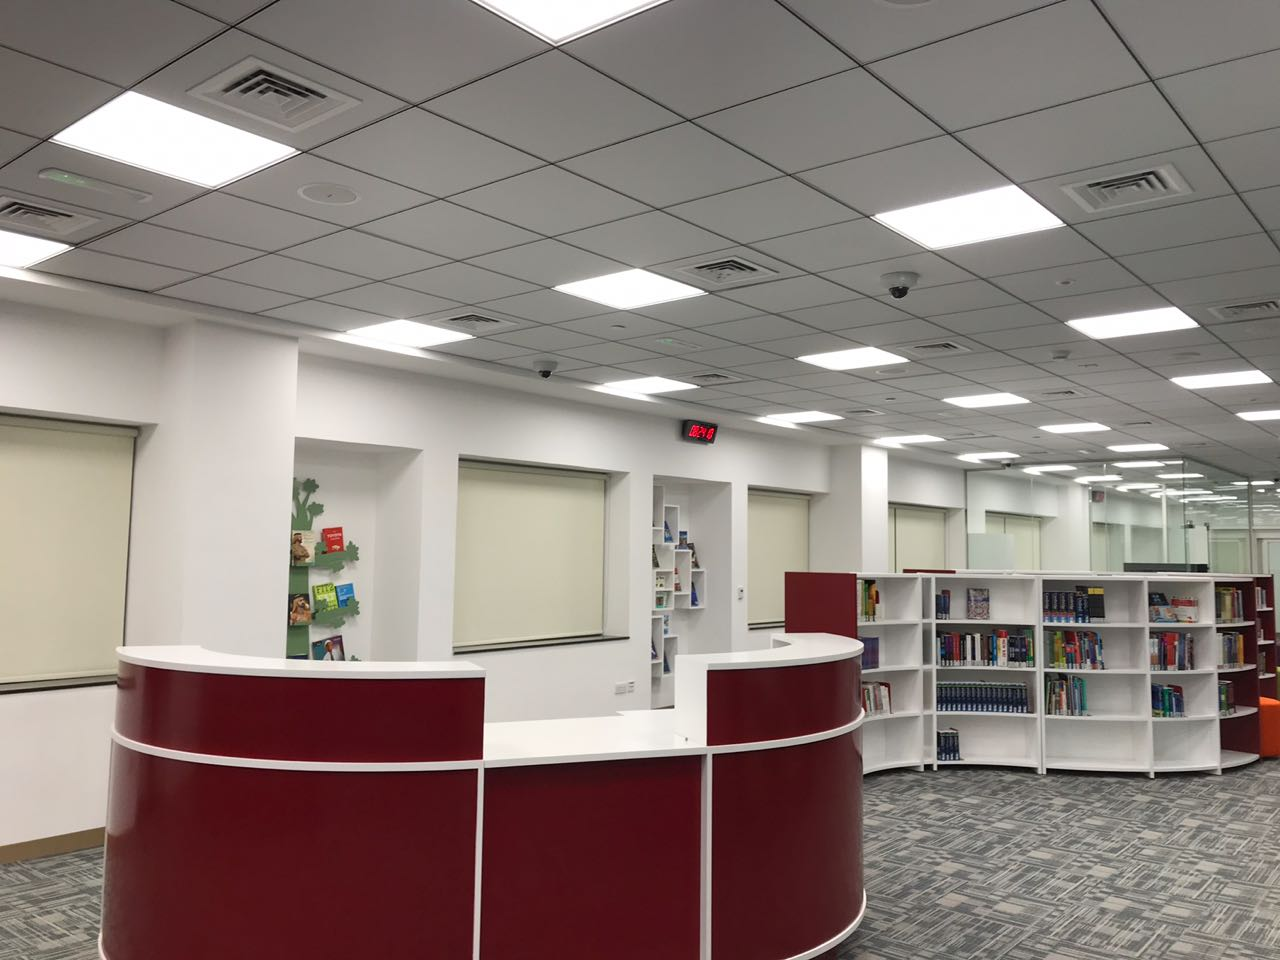 Office Lighting Premium Office Lighting Solutions With Lumibright Luminaires At